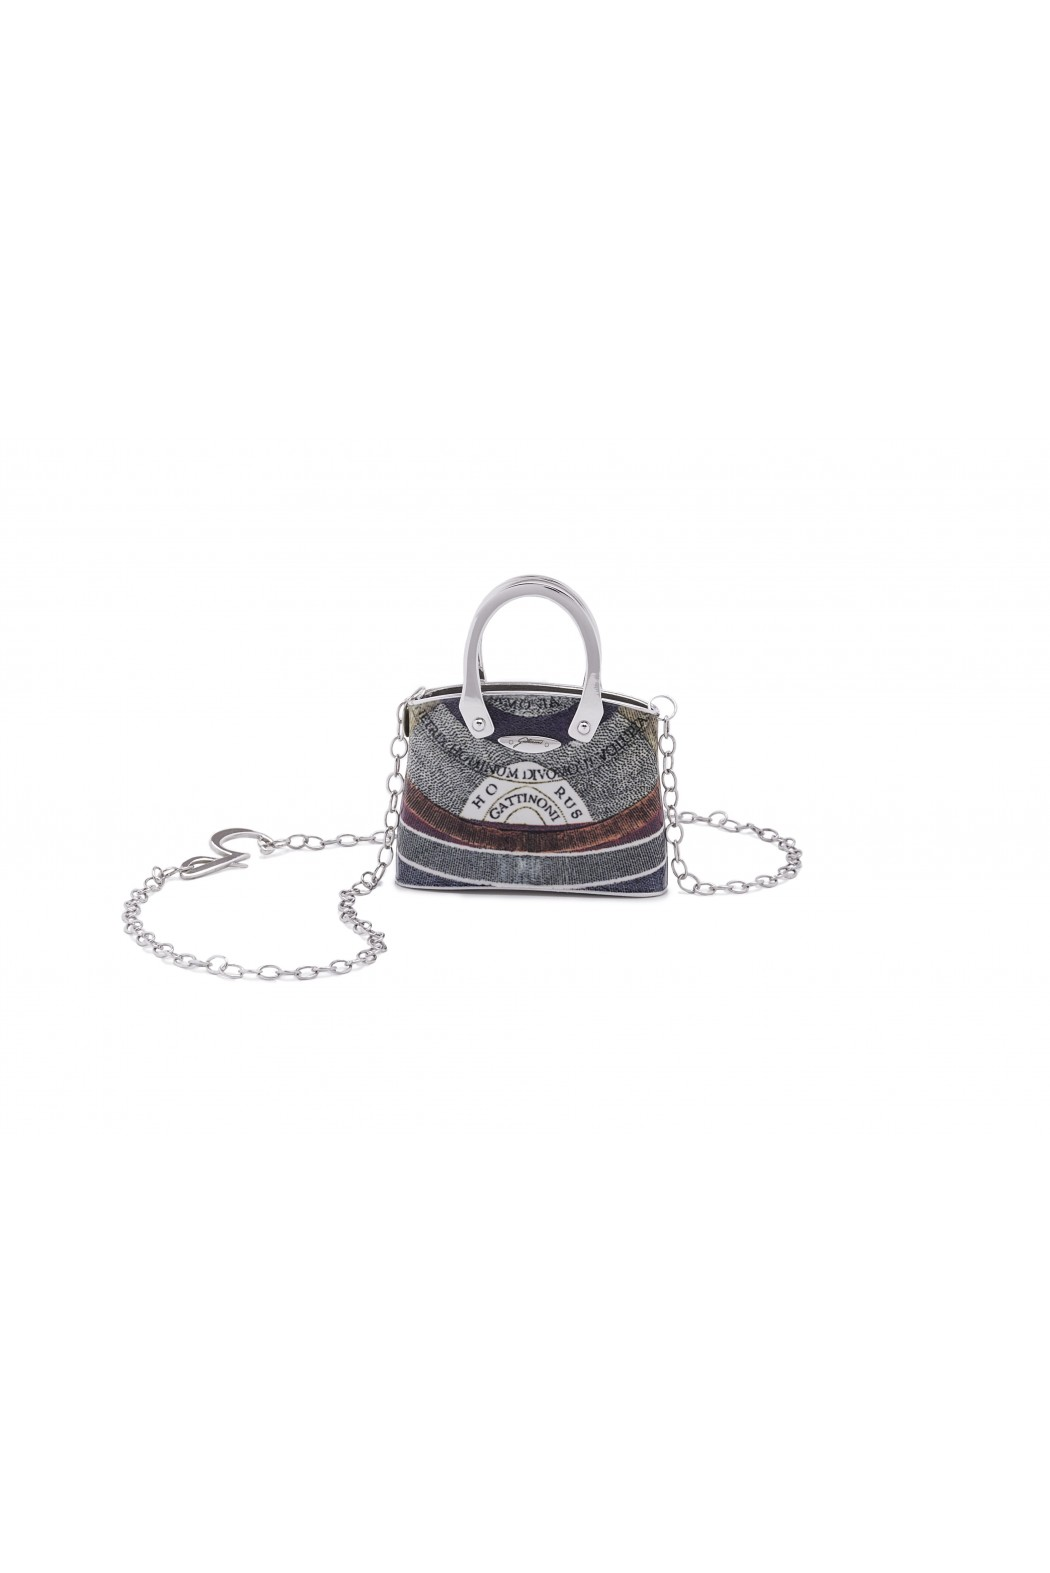 JEWEL FRAME BAG SILVER